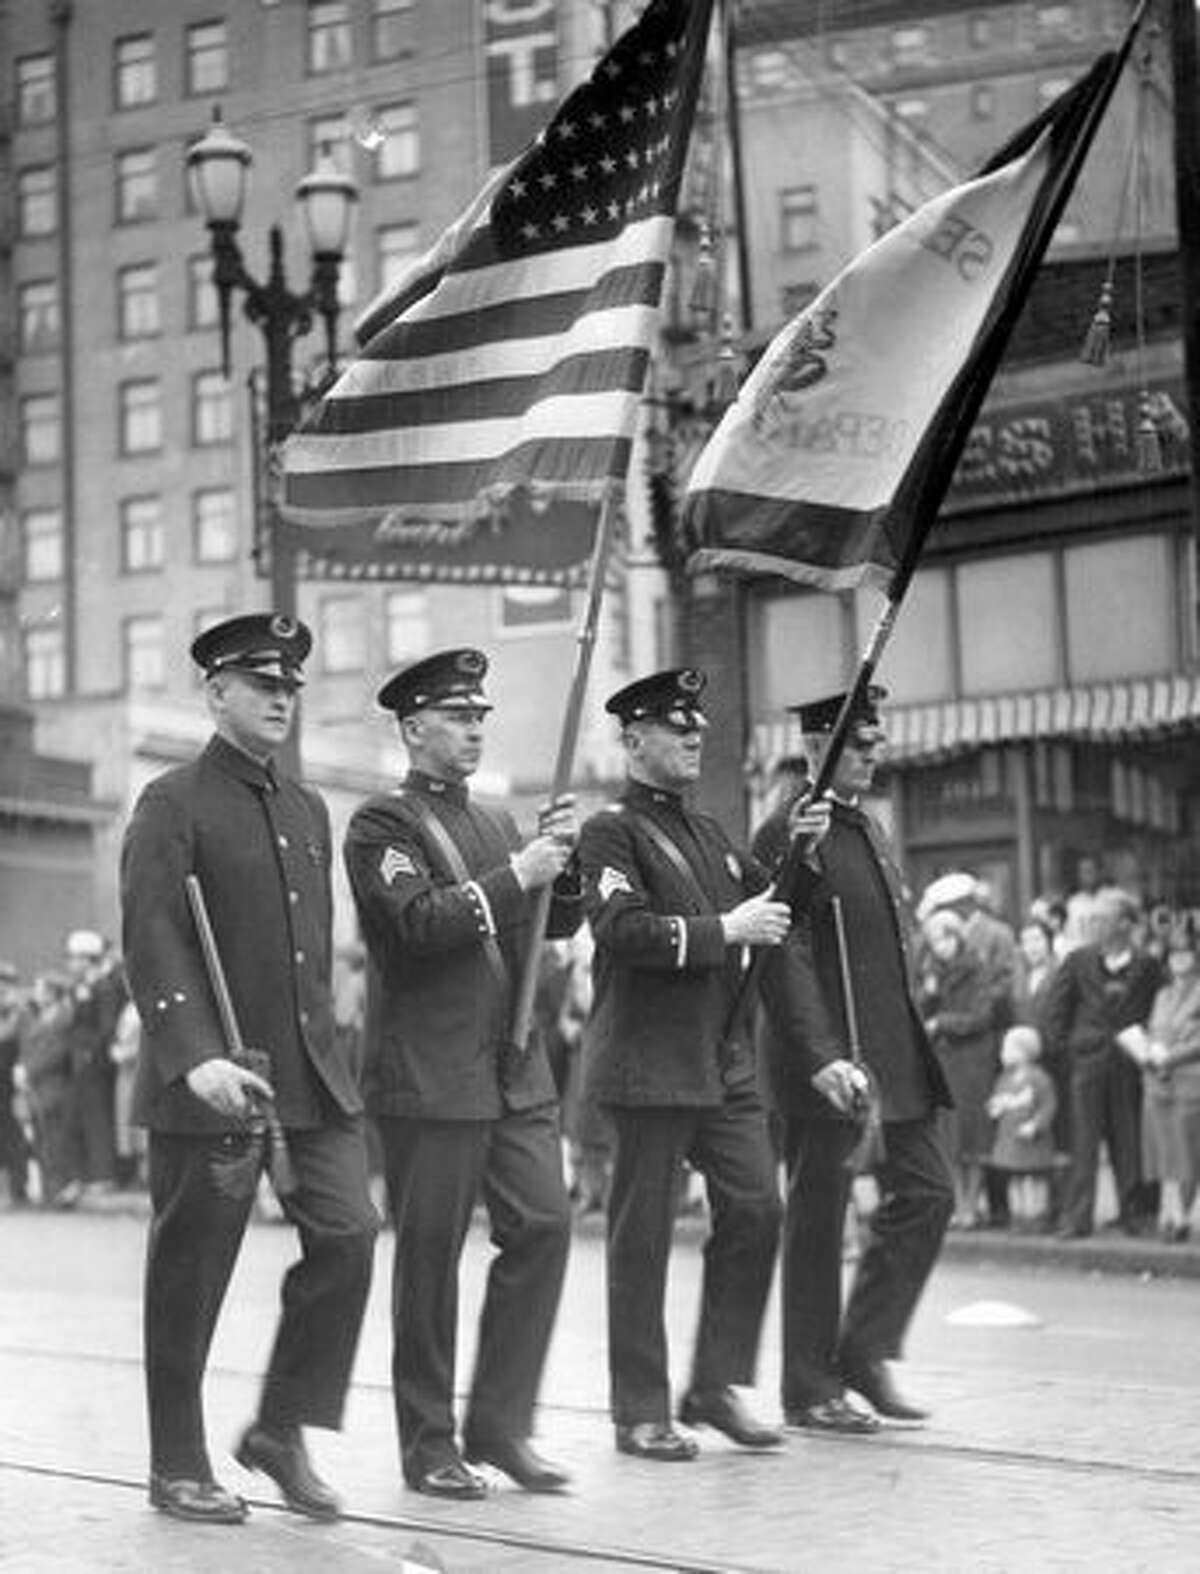 Seattle police officers hold flags during a procession. The date and location are not included with the original photo information.